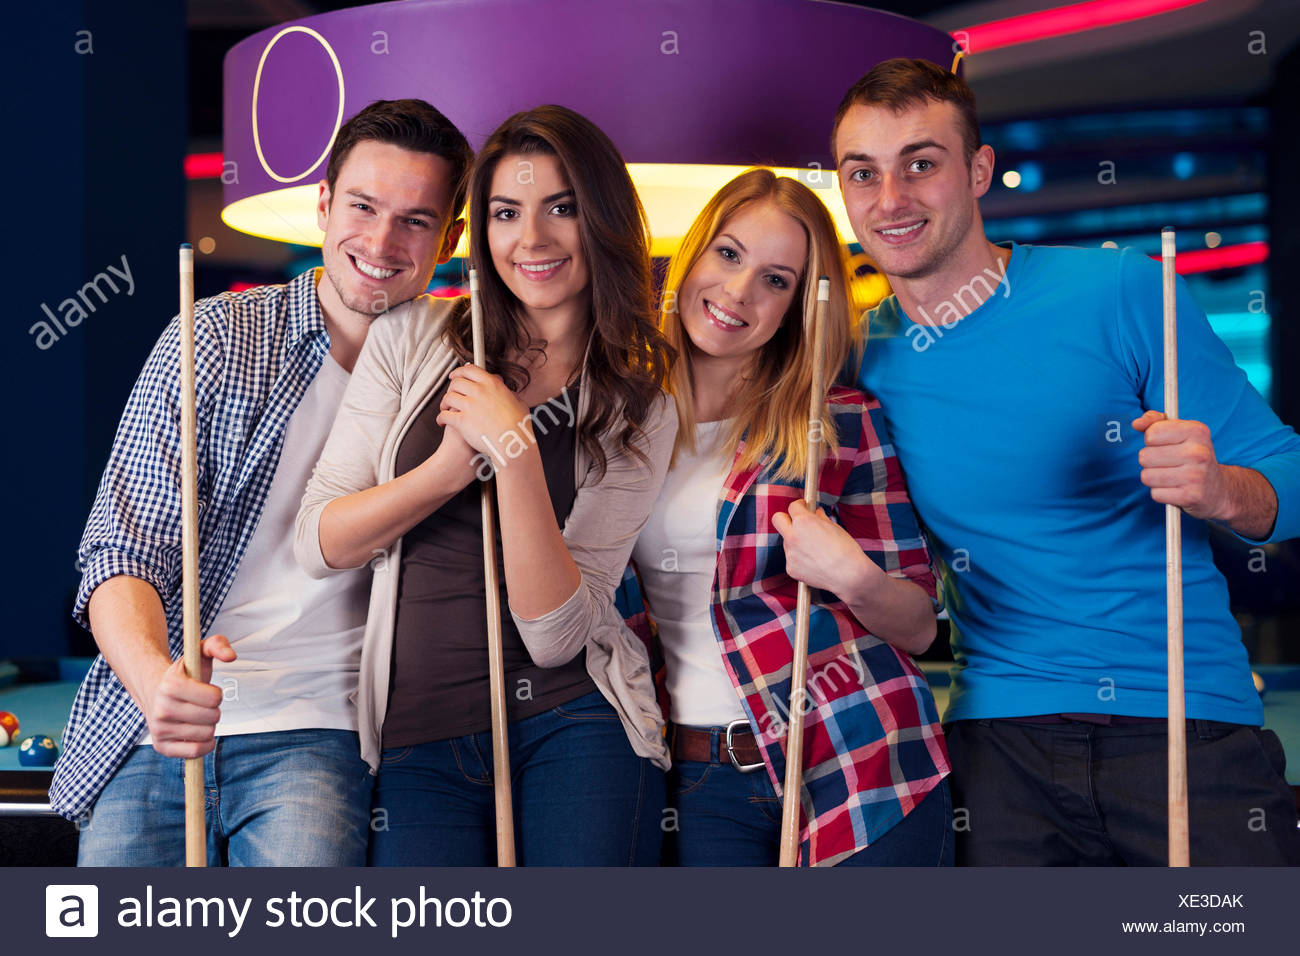 Friends hanging out at the pool bar - Stock Image